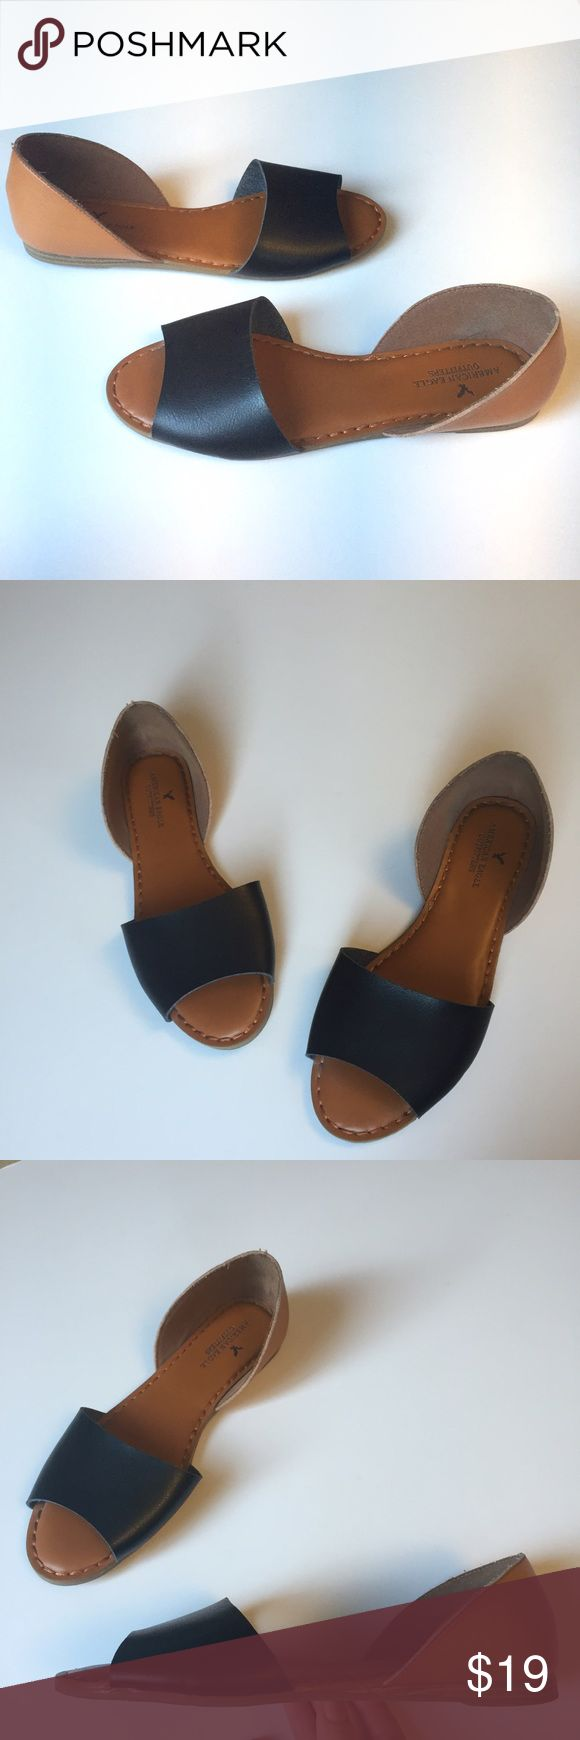 American Eagle Black and Tan open toe flats American Eagle Outfitters open toe flats in black and tan synthetic leather. Tan d'orsay heel with black toe strap. Size 10 in excellent condition. American Eagle Outfitters Shoes Flats & Loafers